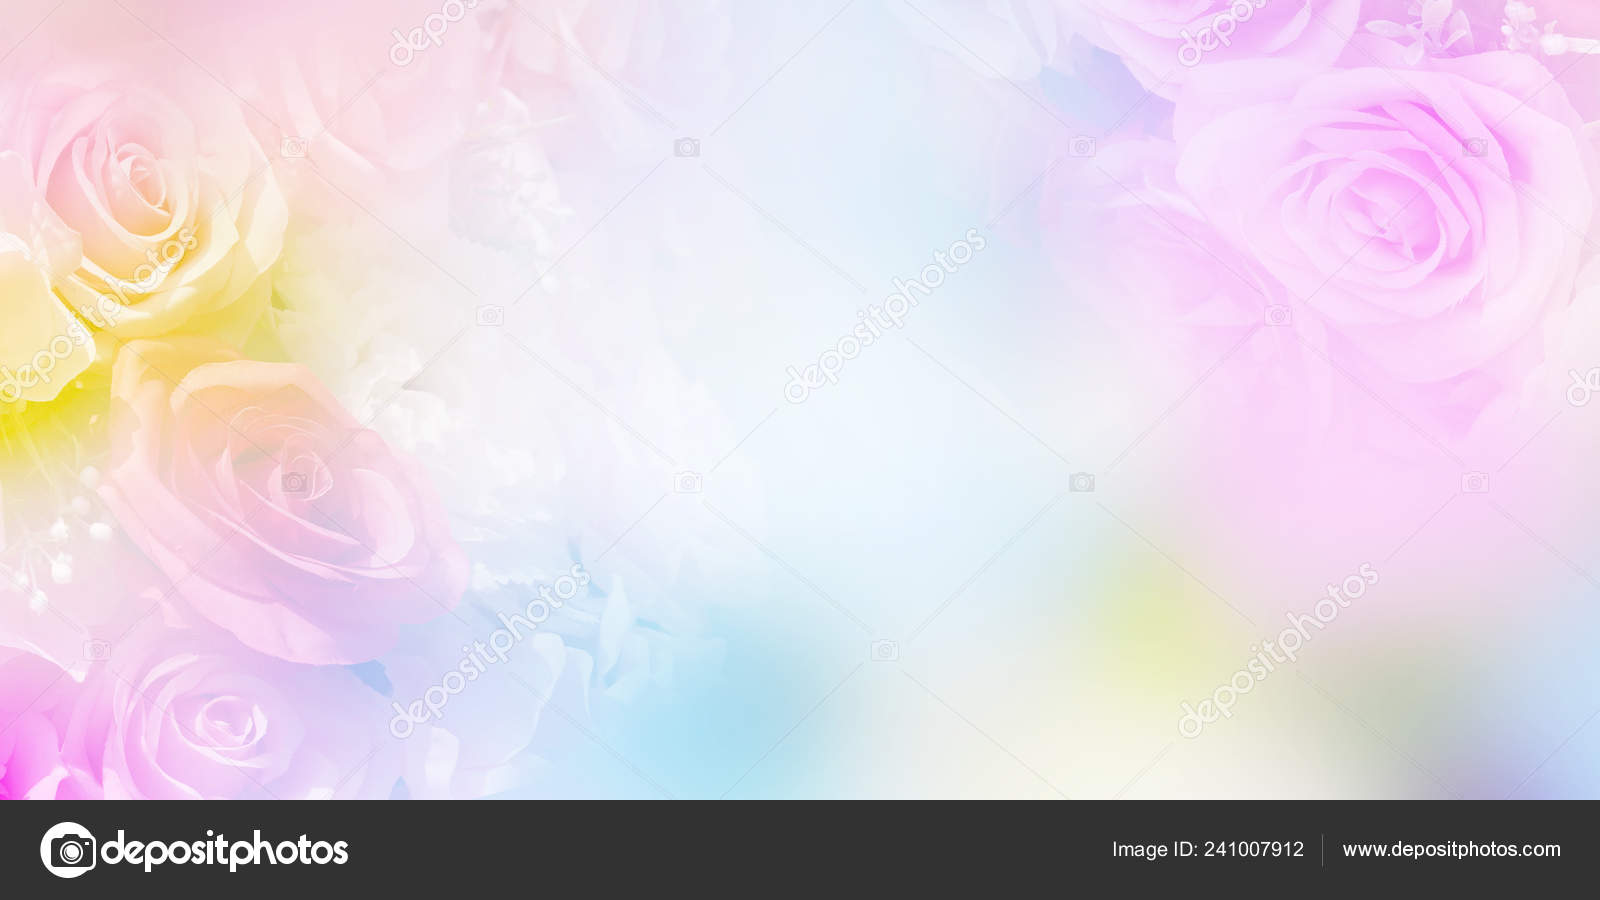 Floral Abstract Pastel Background Copy Space Pink Violet Roses Soft Stock Photo C P Kanchana 241007912